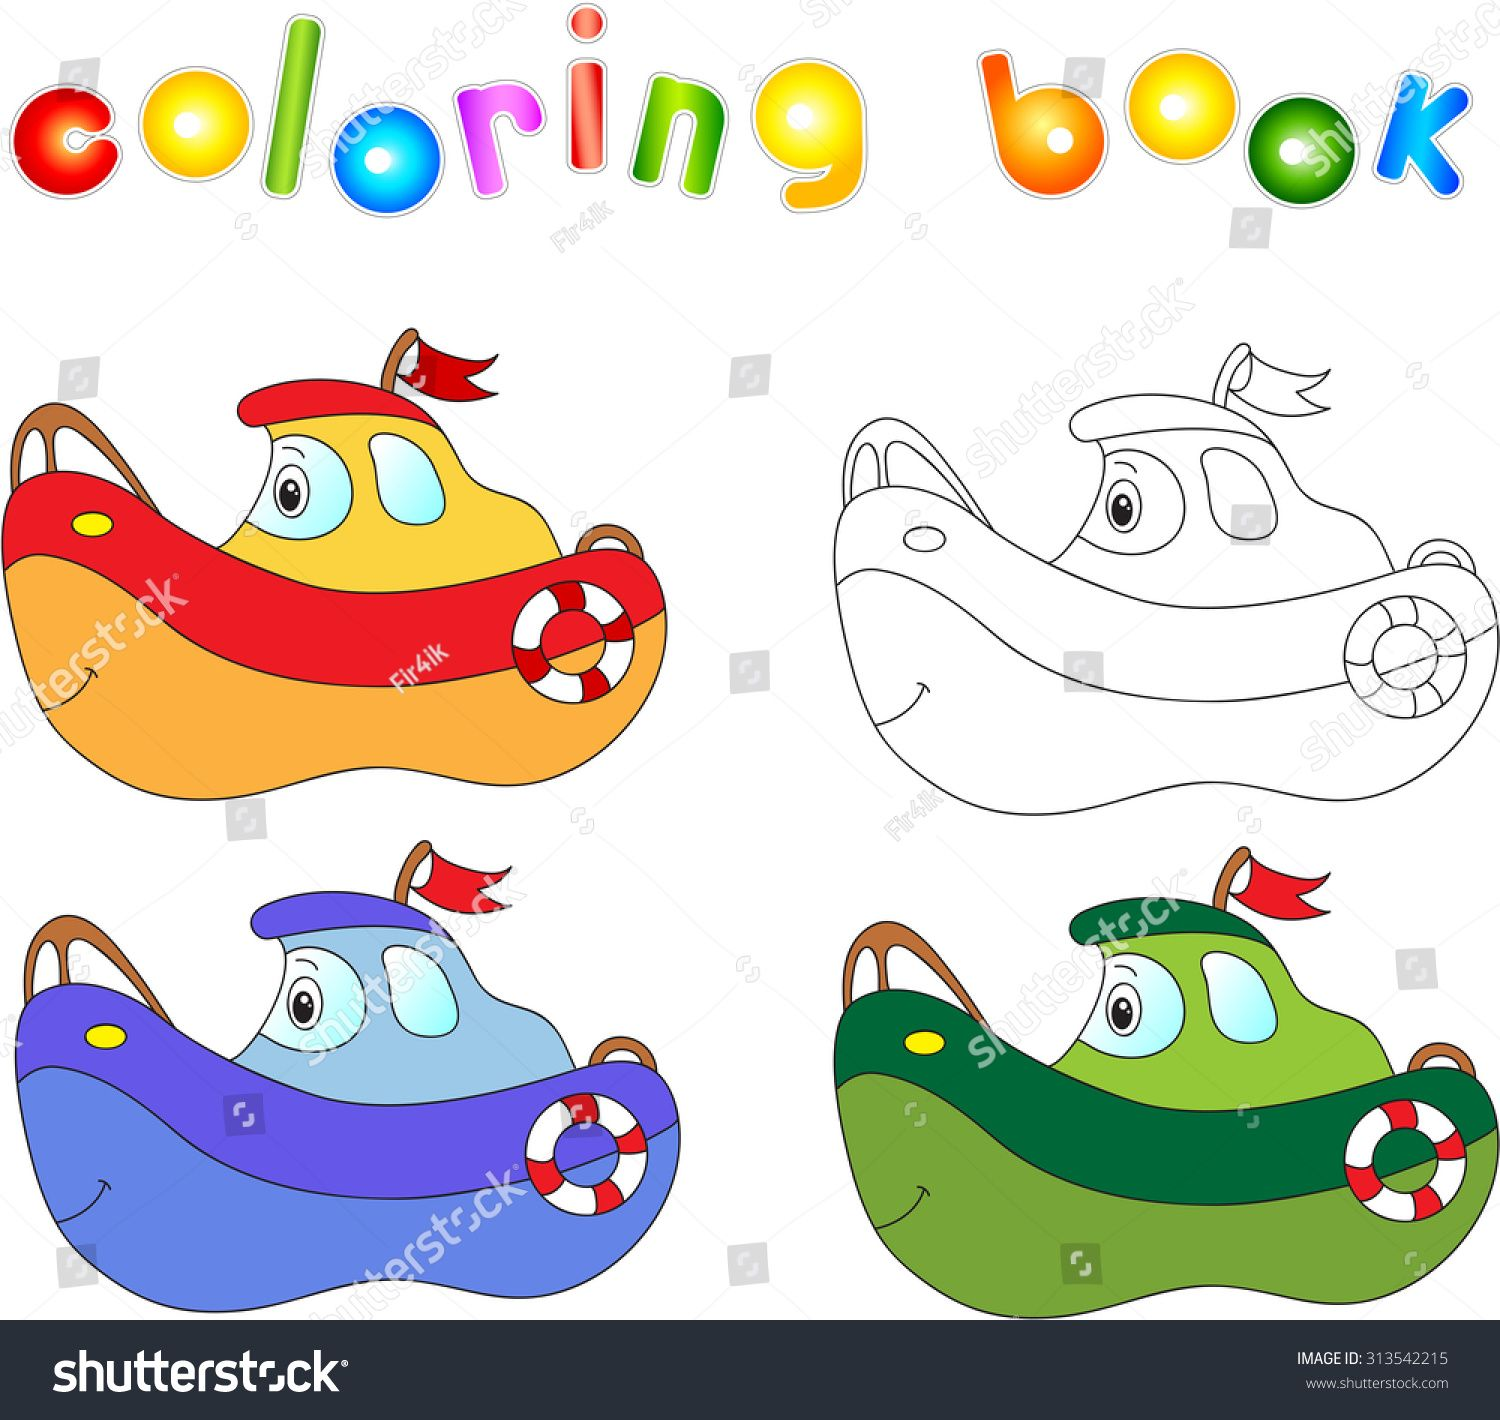 Funny cartoon ship. Coloring book for children. Sponsored